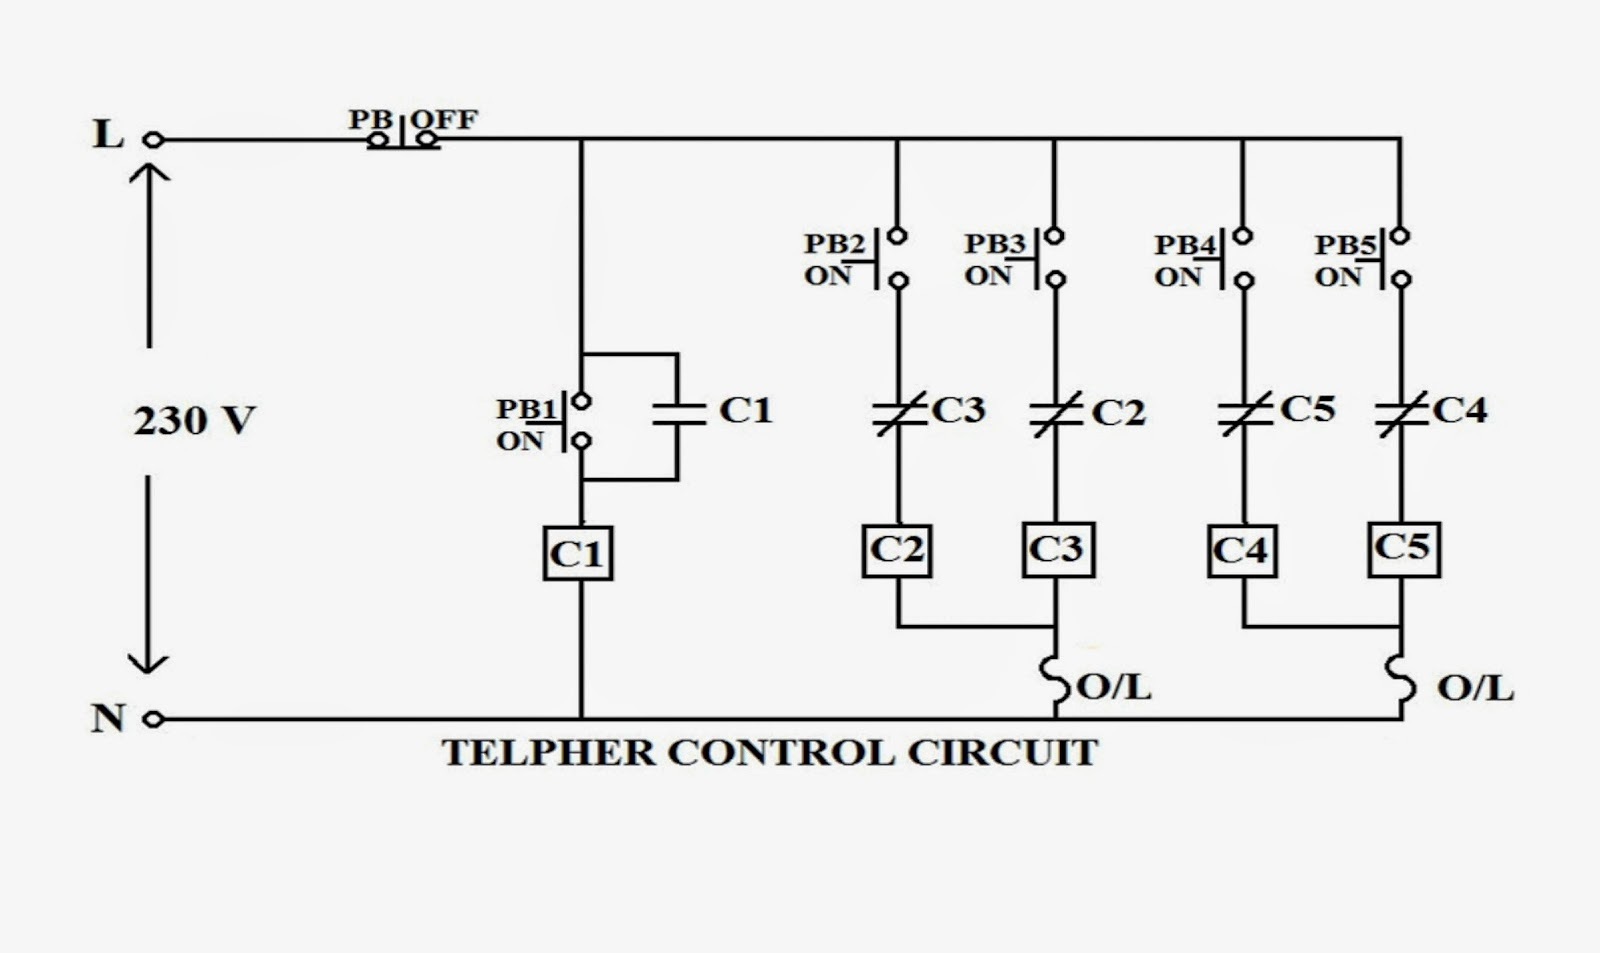 Training Report On Bokaro Steel Plant Common Electrical Doubts Captive Power Block Diagram The Control Circuit Is Similar To Two Way Starter Except They Dont Have Hold Facility For Both Motors Which Means Parallel Connection Of Auxiliary